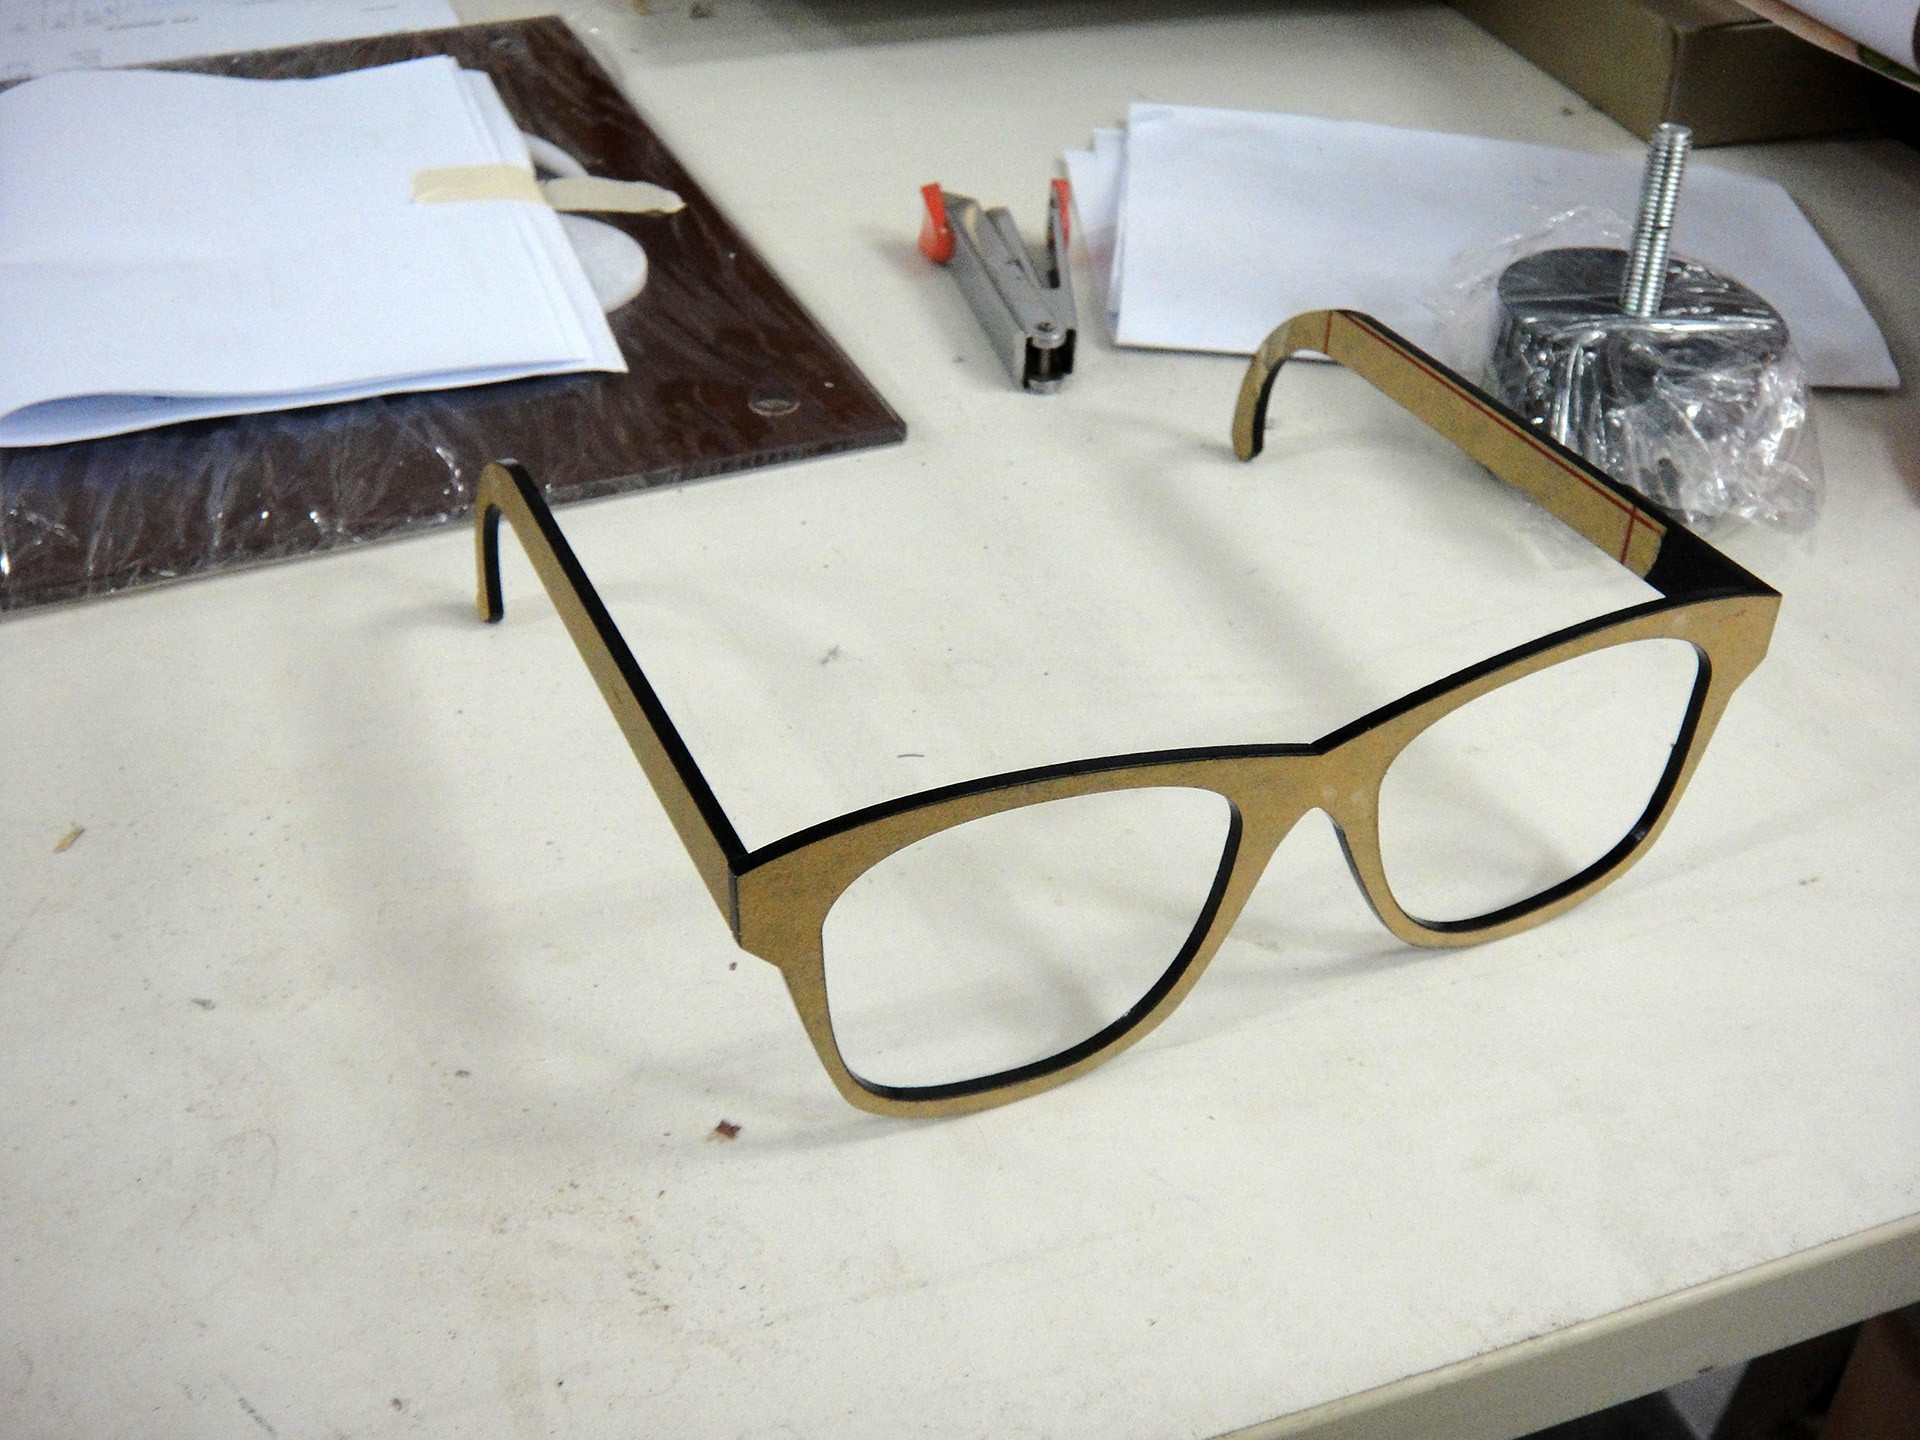 Best ideas about DIY Laser Cutter Plywood . Save or Pin diy laser cutter plywood Diy Do It Your Self Now.